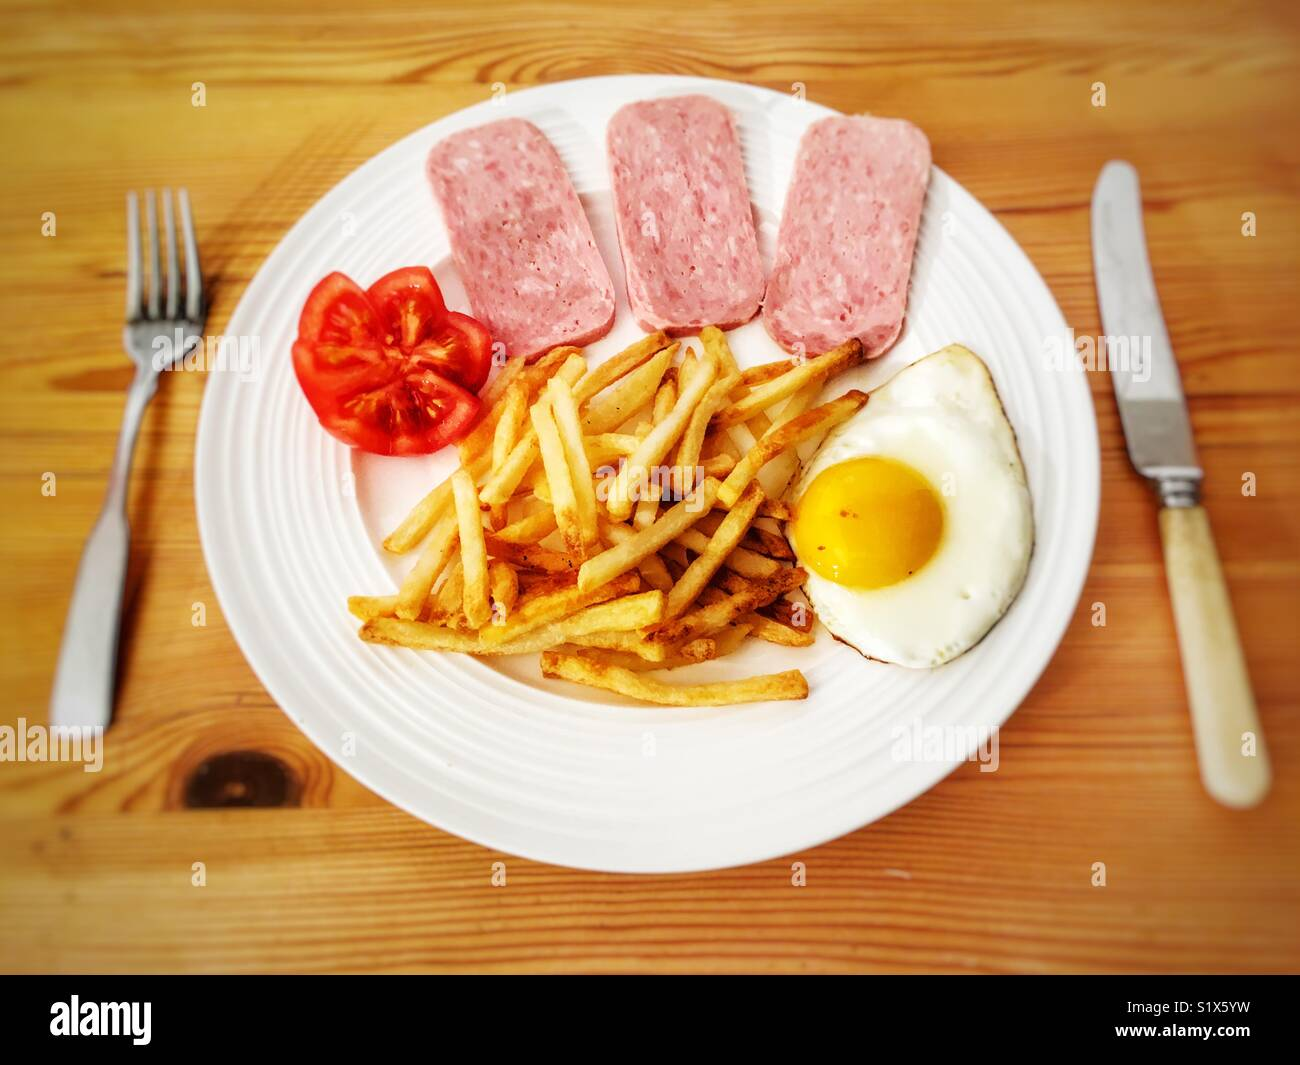 Spam chips and egg with tomato - Stock Image